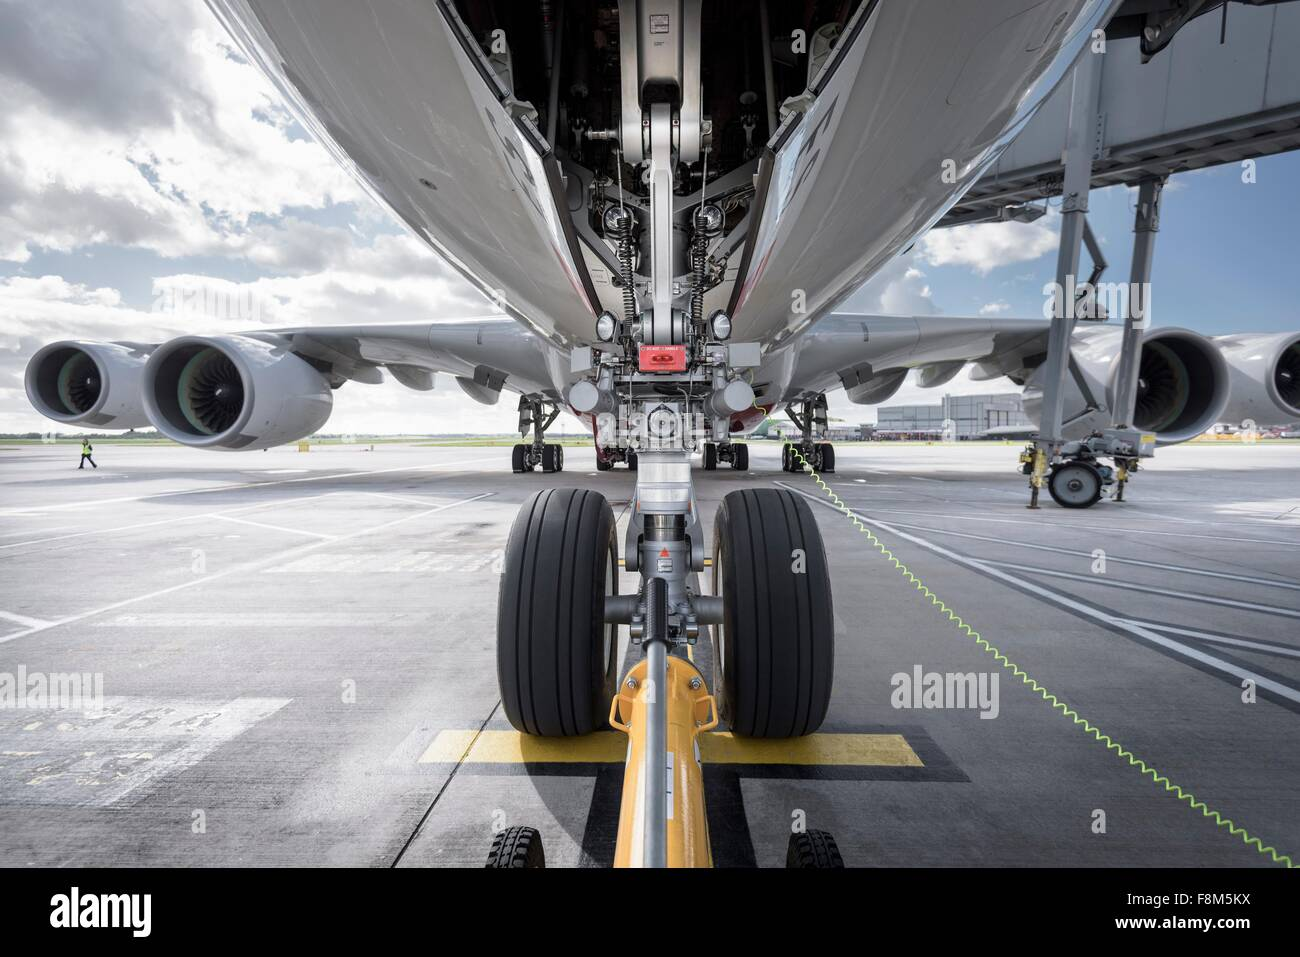 Underside view of A380 aircraft about to taxi - Stock Image